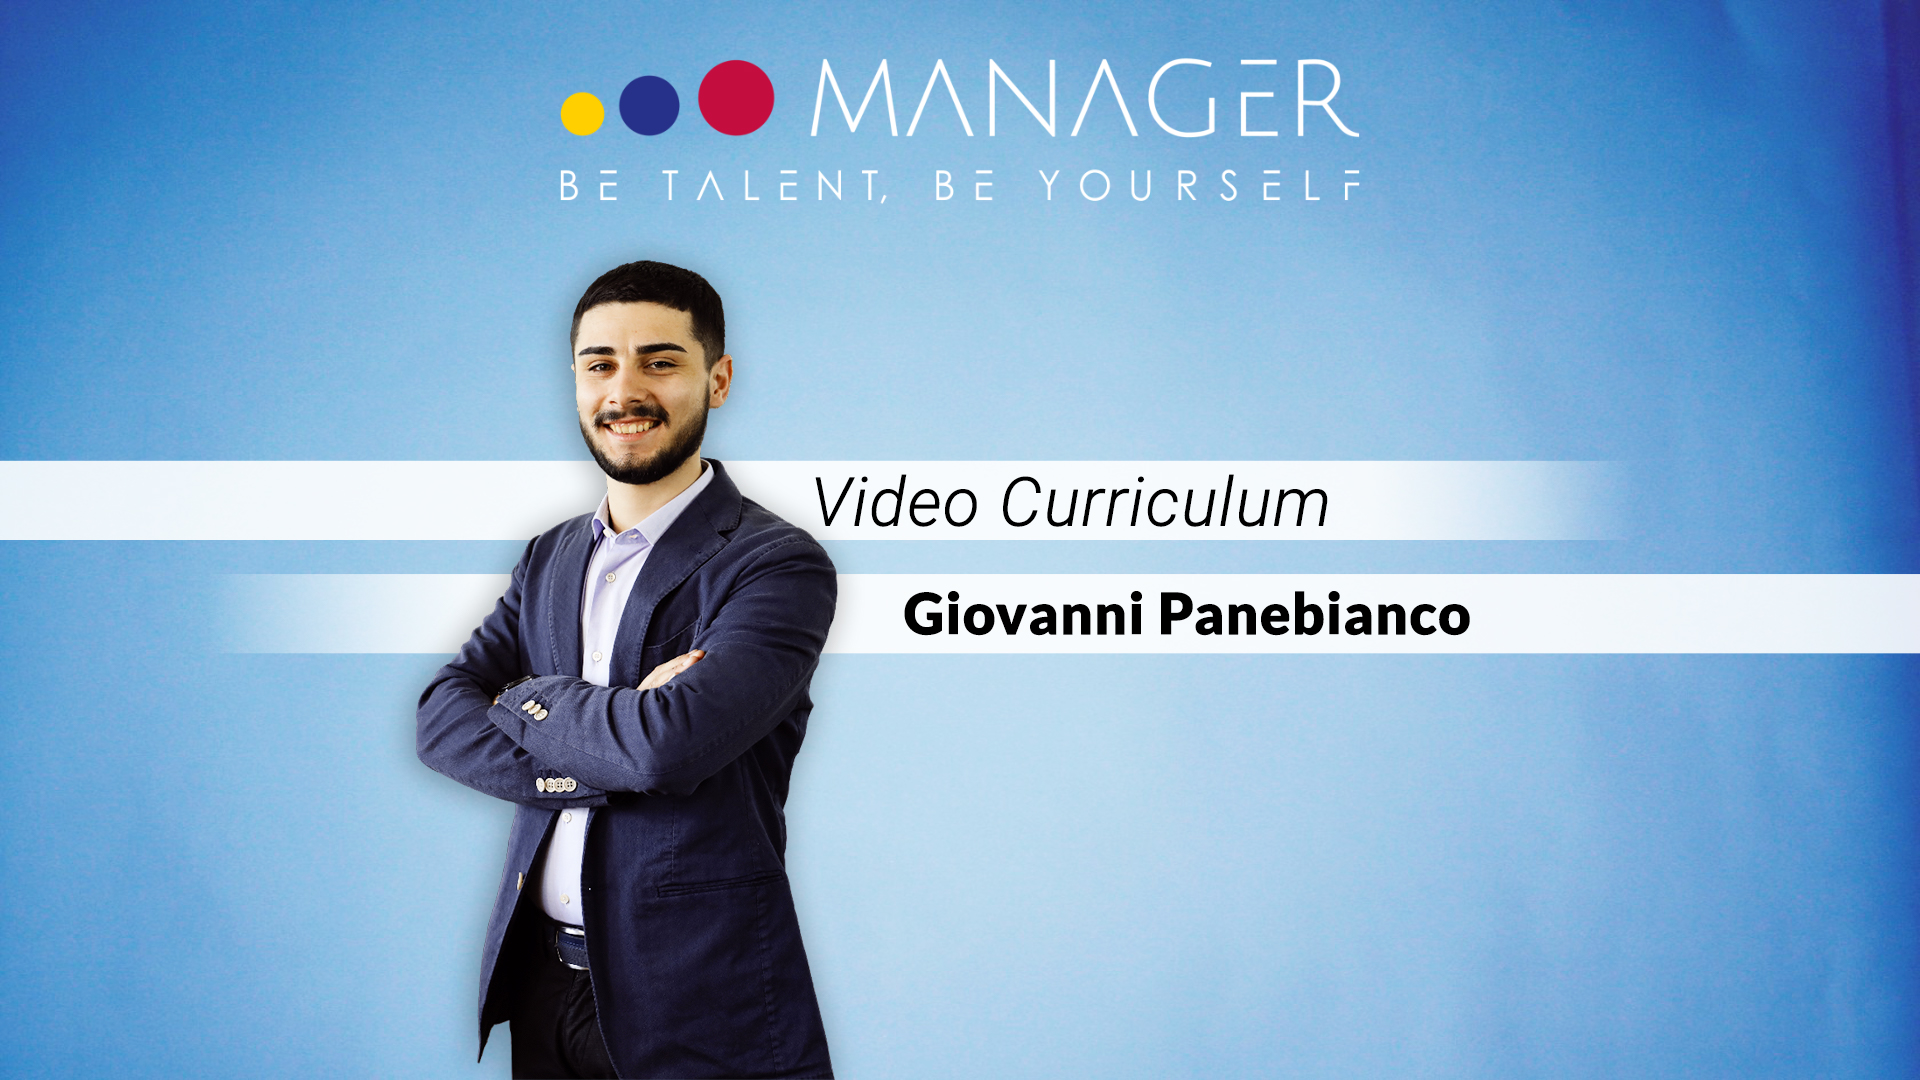 video curriculum giovanni panebianco